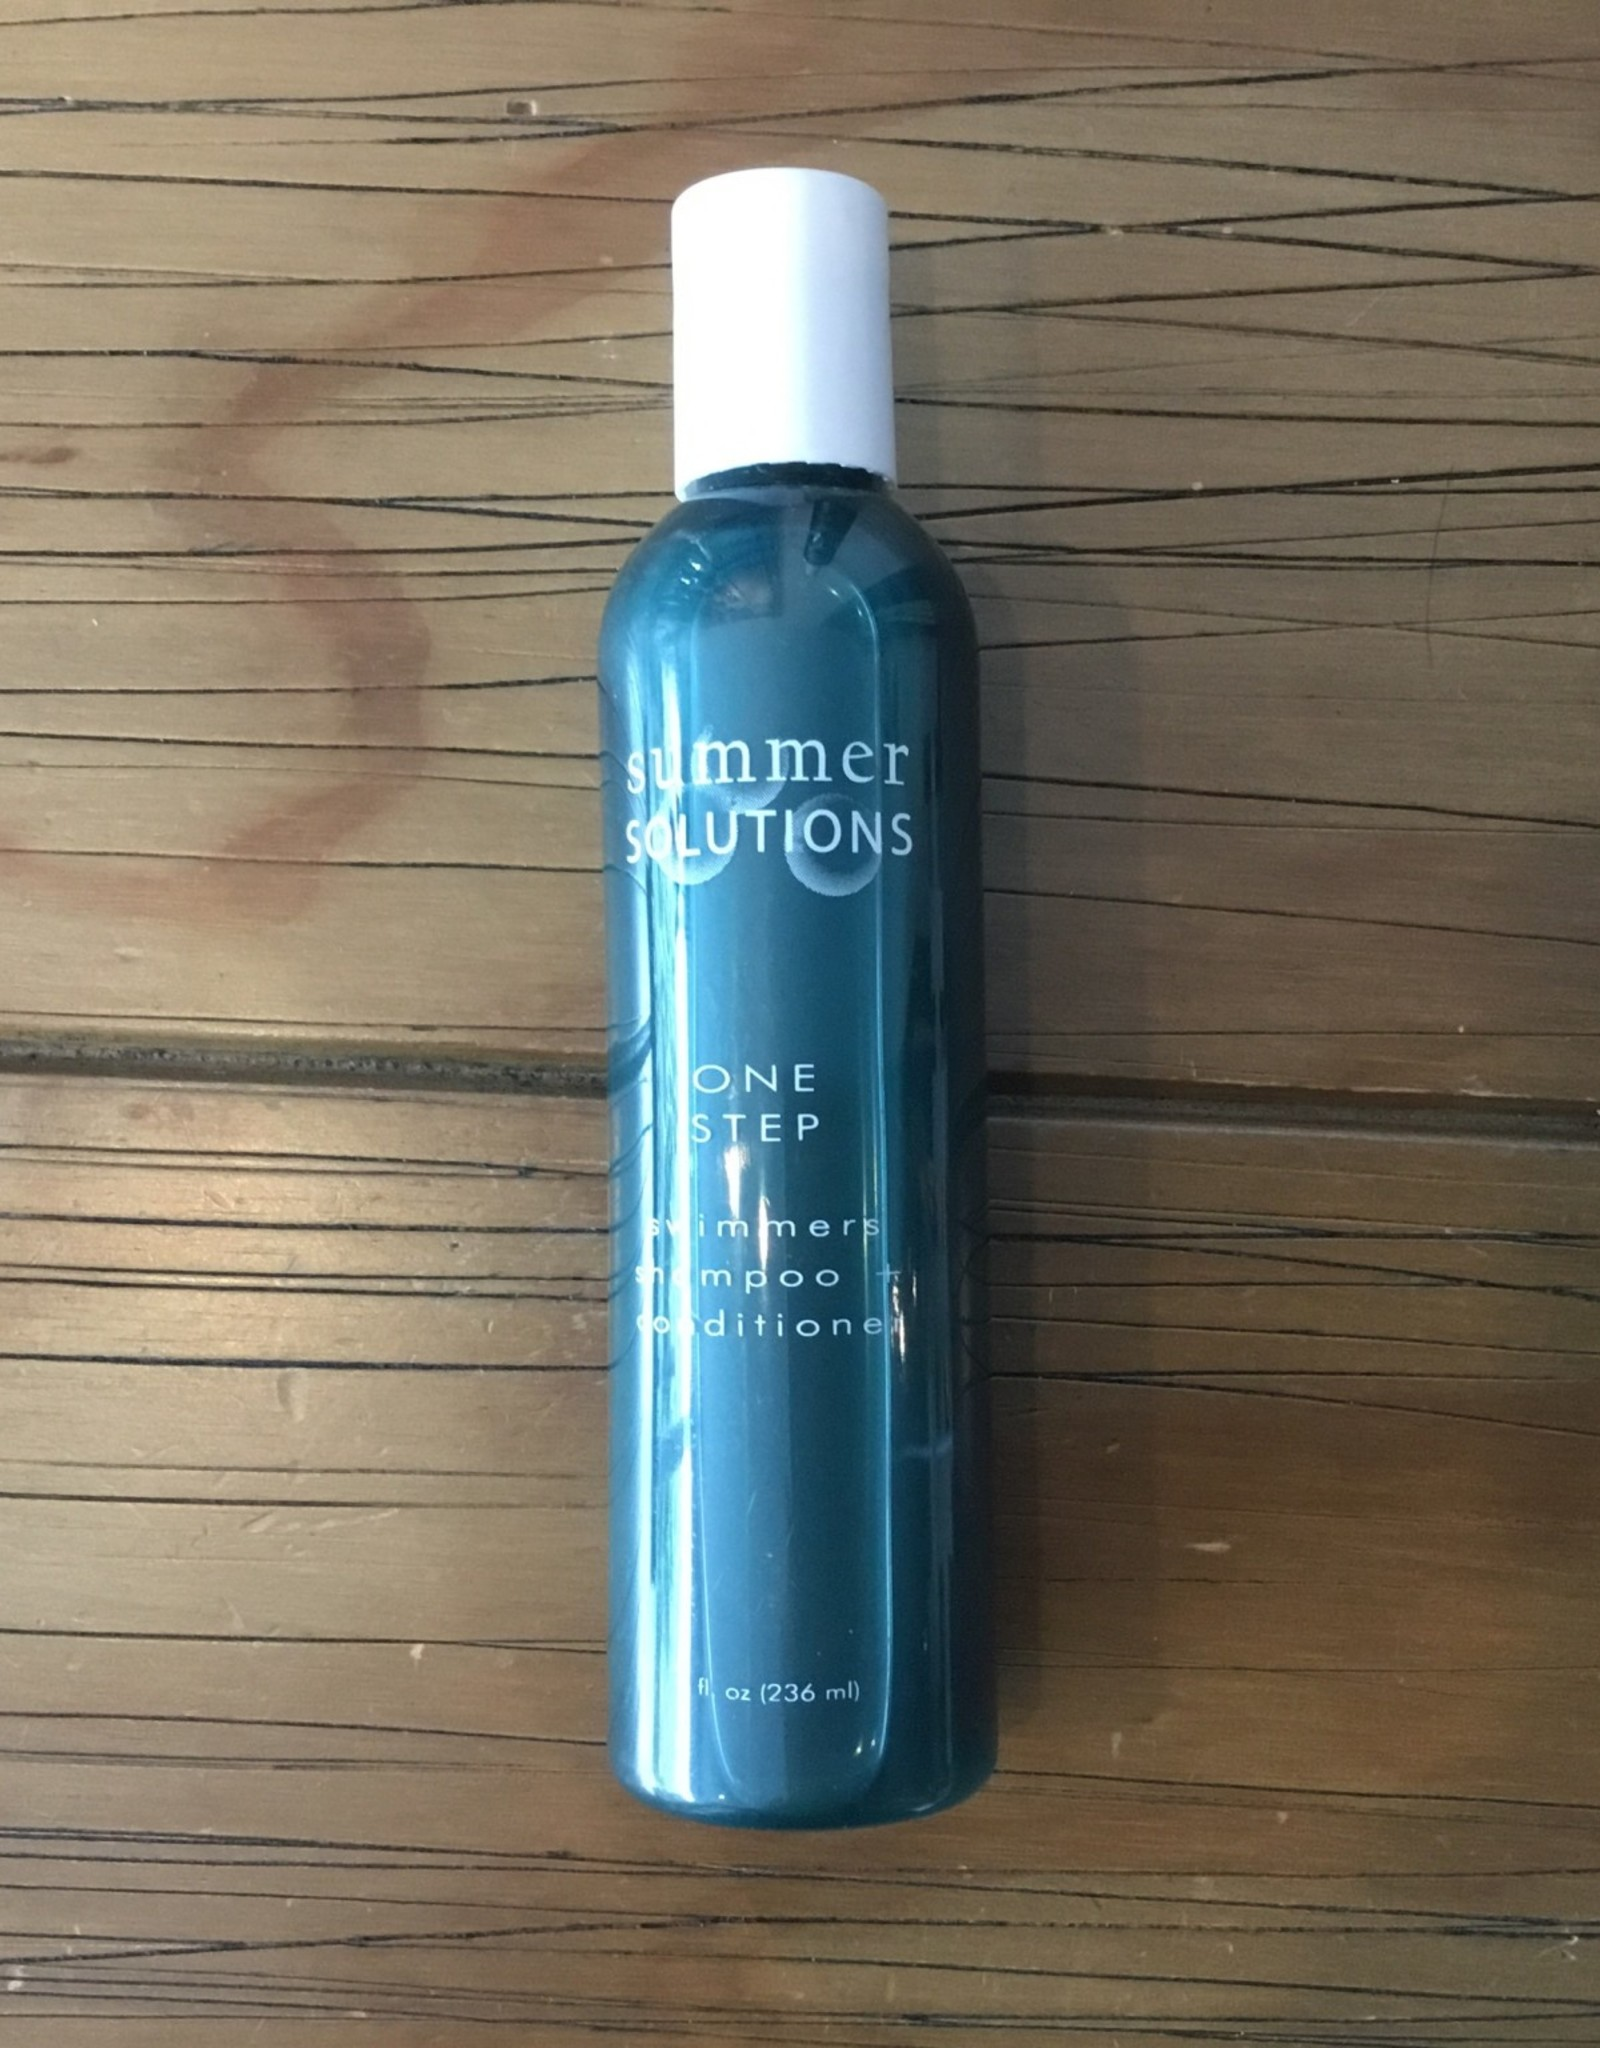 Summer Solutions One Step Shampoo with Conditioner